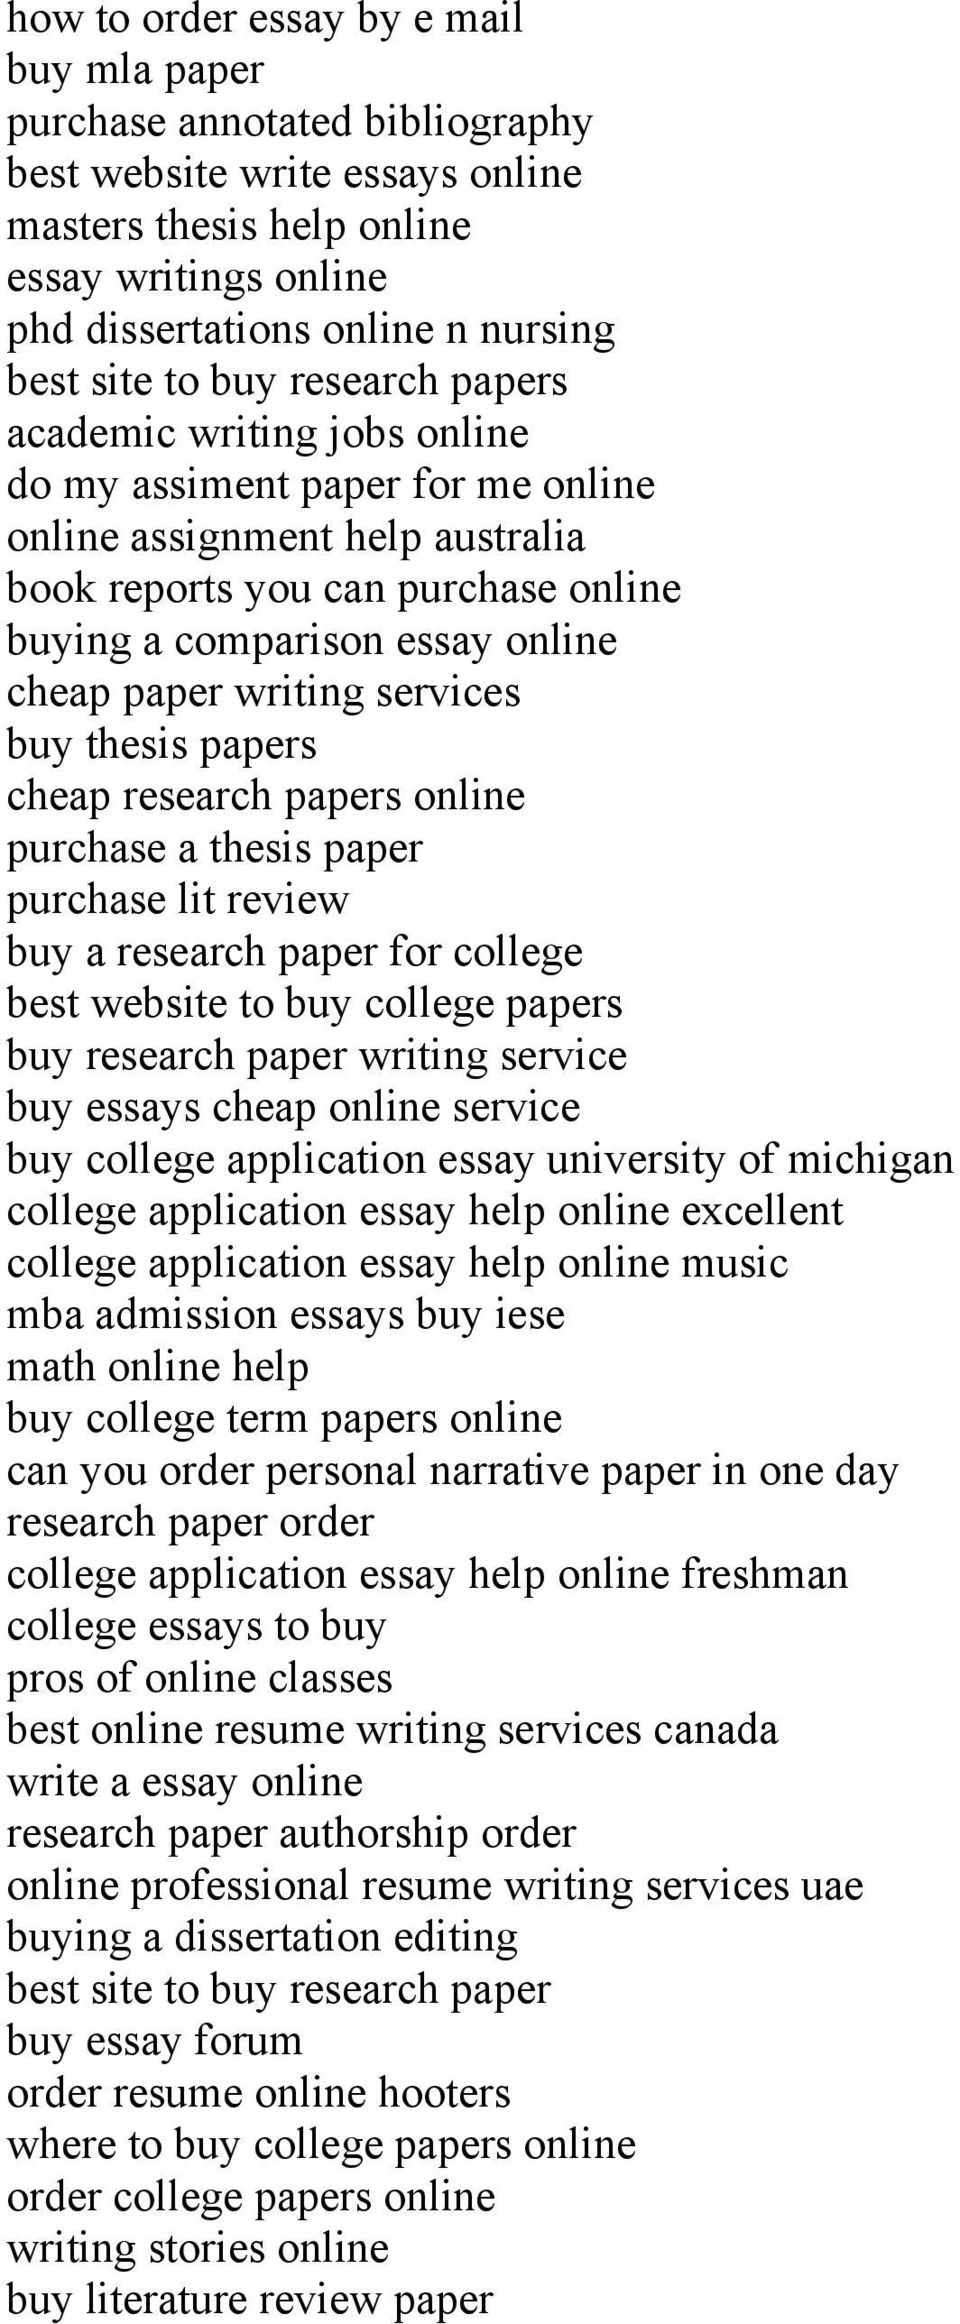 014 Research Paper Buying For College Page 5 Top A Buy Cheap Full